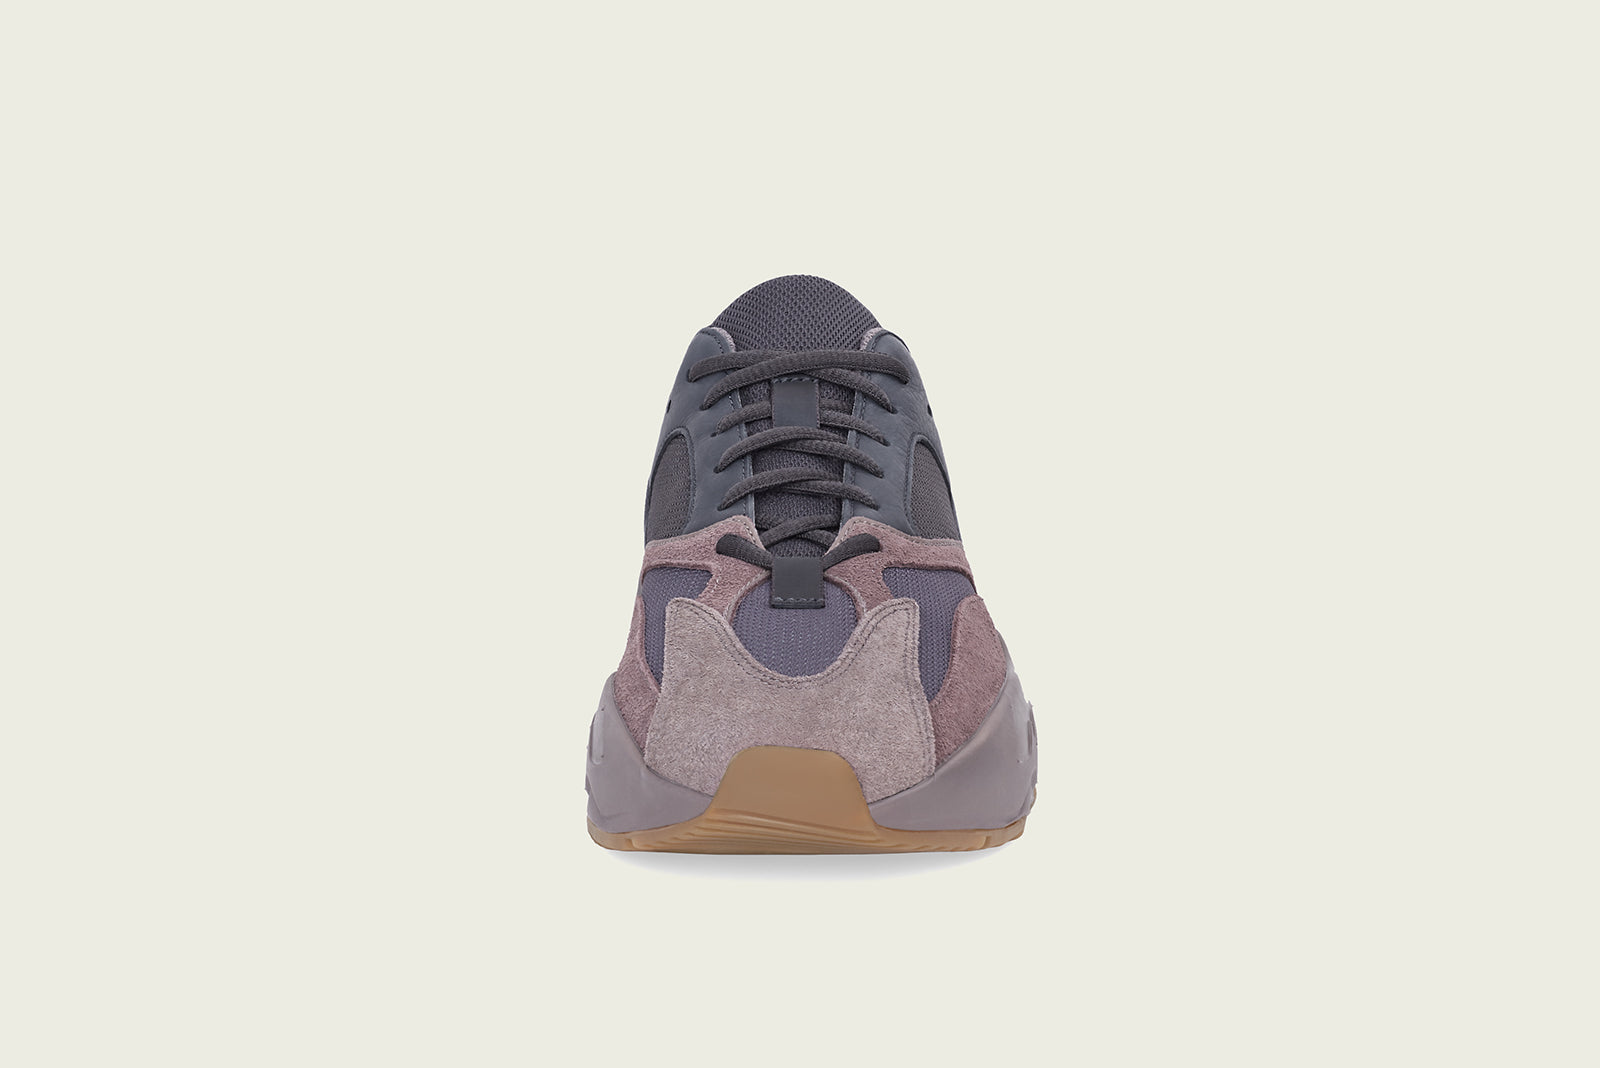 lowest price 1d4d2 61224 adidas + KANYE WEST YEEZY BOOST 700